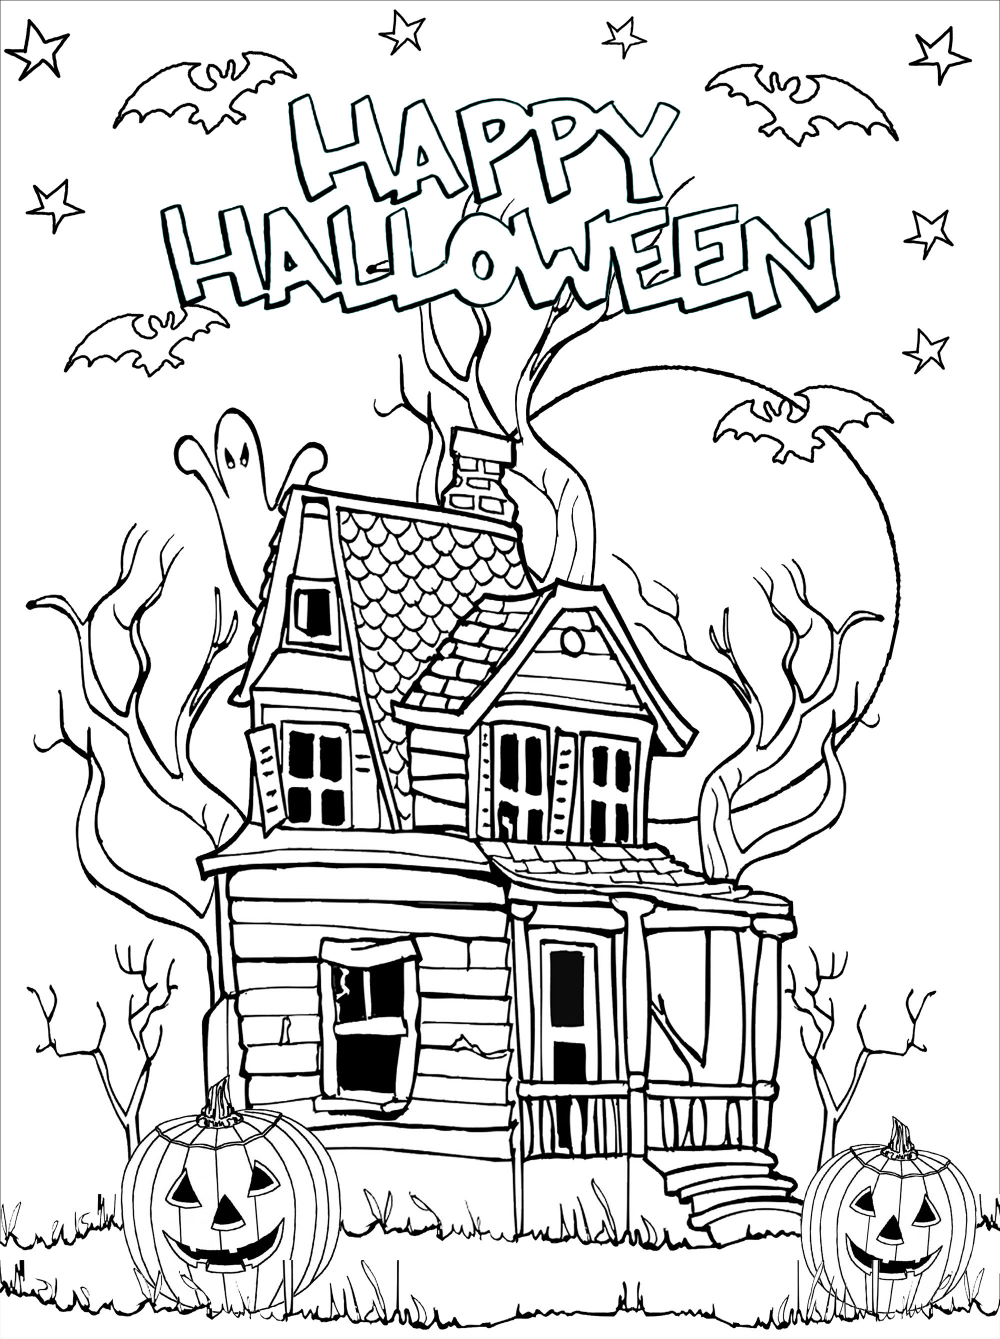 Haunted House To Print And Color With Pumpkins Jack O Lantern Dead Trees Bats Halloween Coloring Free Halloween Coloring Pages Halloween Coloring Pictures [ 1339 x 1000 Pixel ]